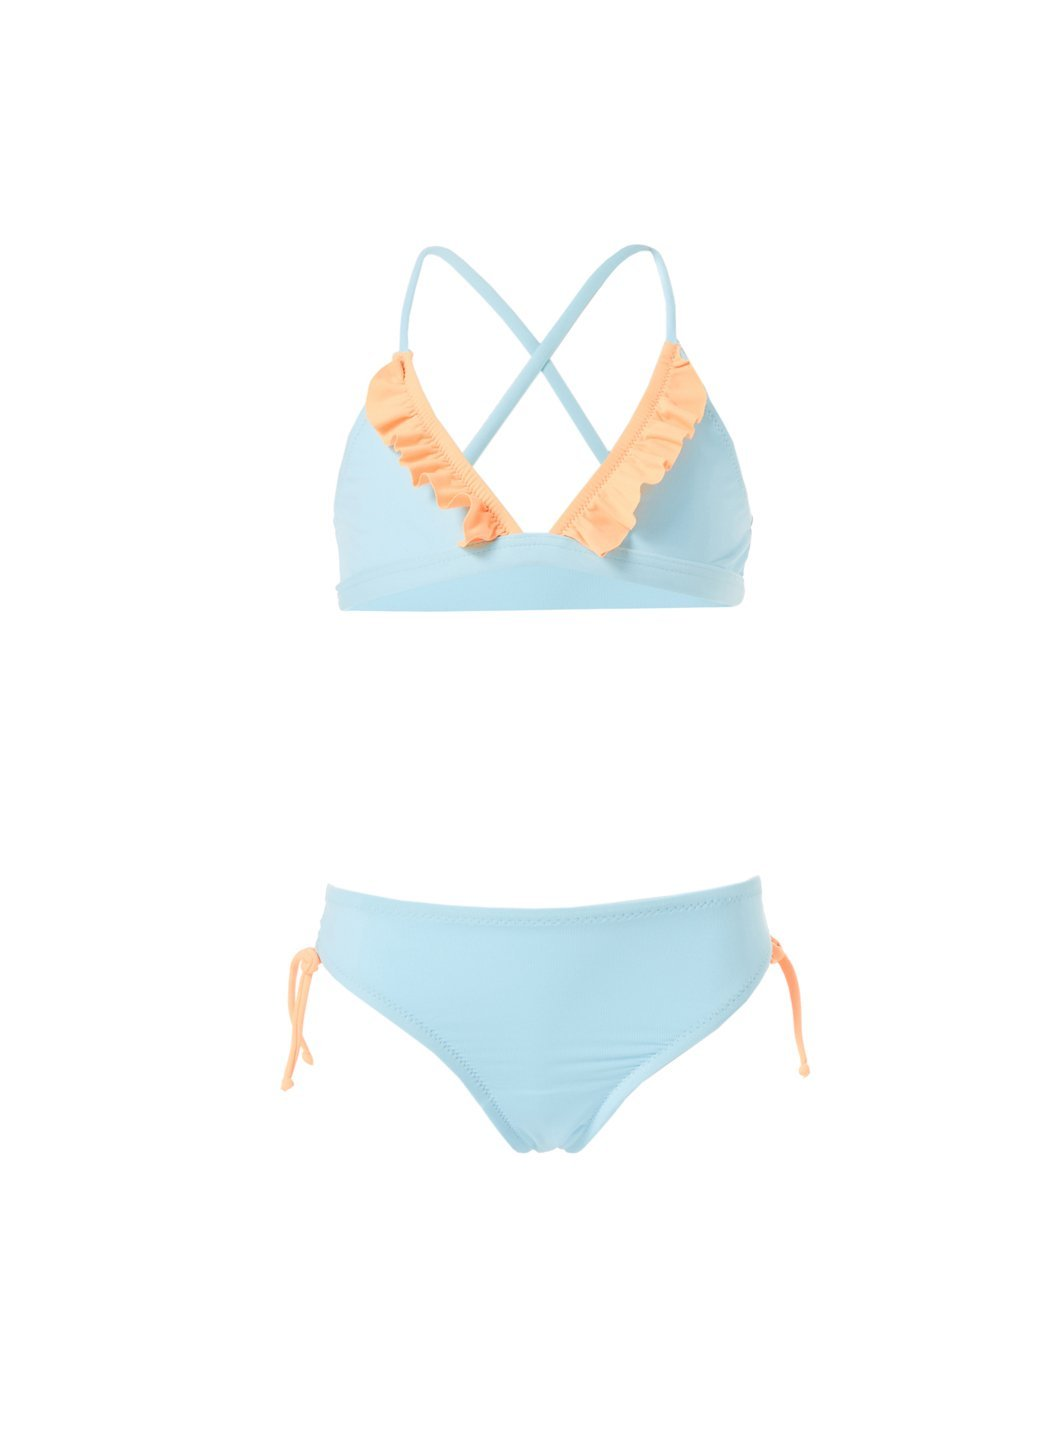 baby new york sky mango triangle bikini 2019